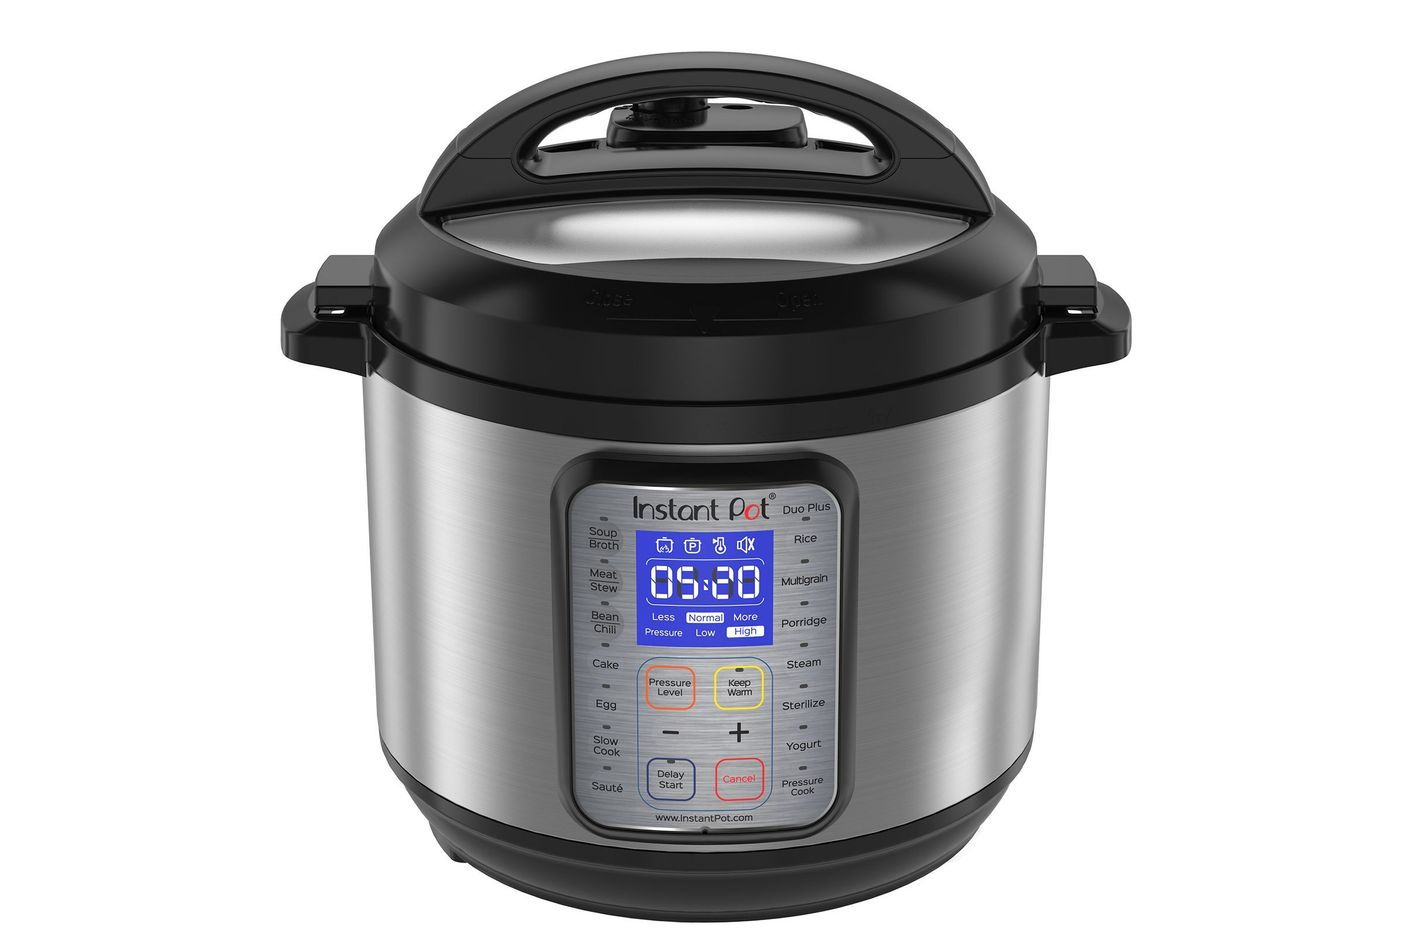 Instant Pot DUO Plus 6-Quart 9-in-1 Multi-Use Programmable Pressure Cooker